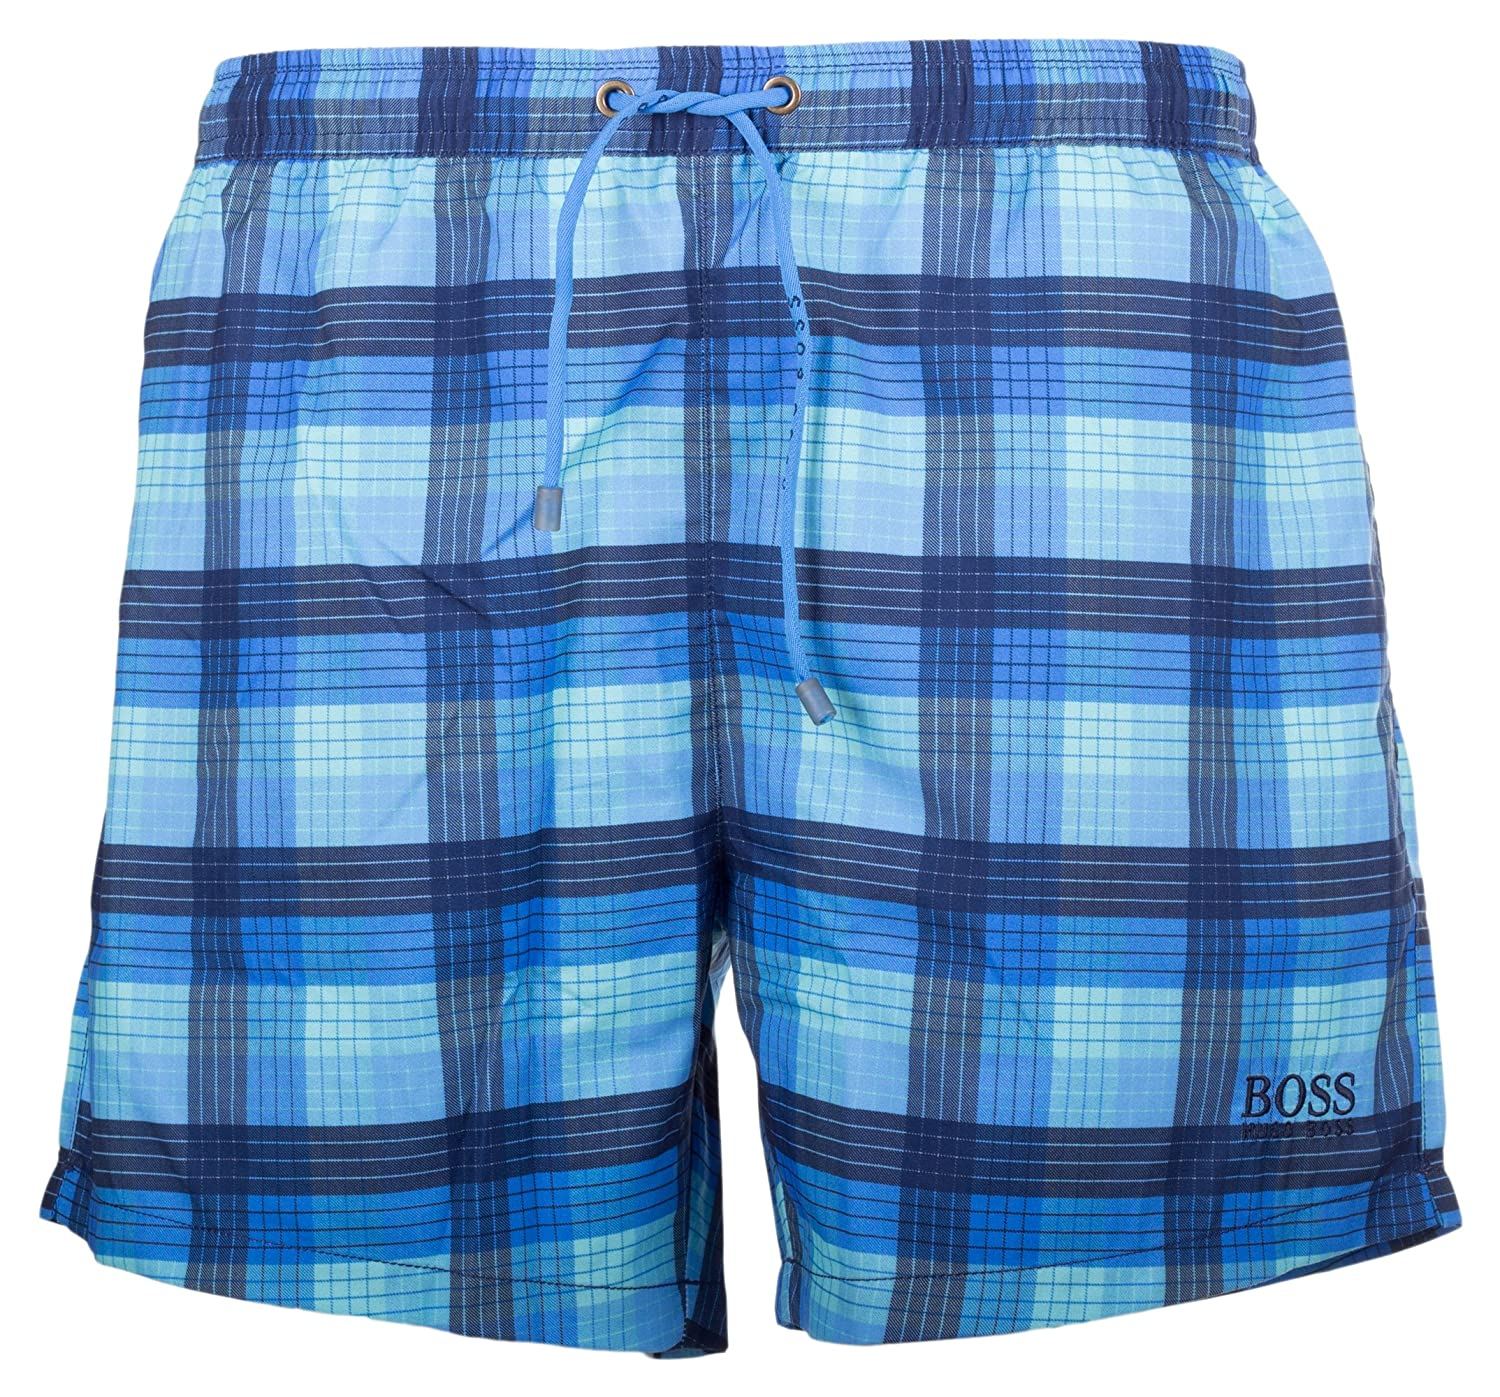 Boss Men's Swimming Shorts